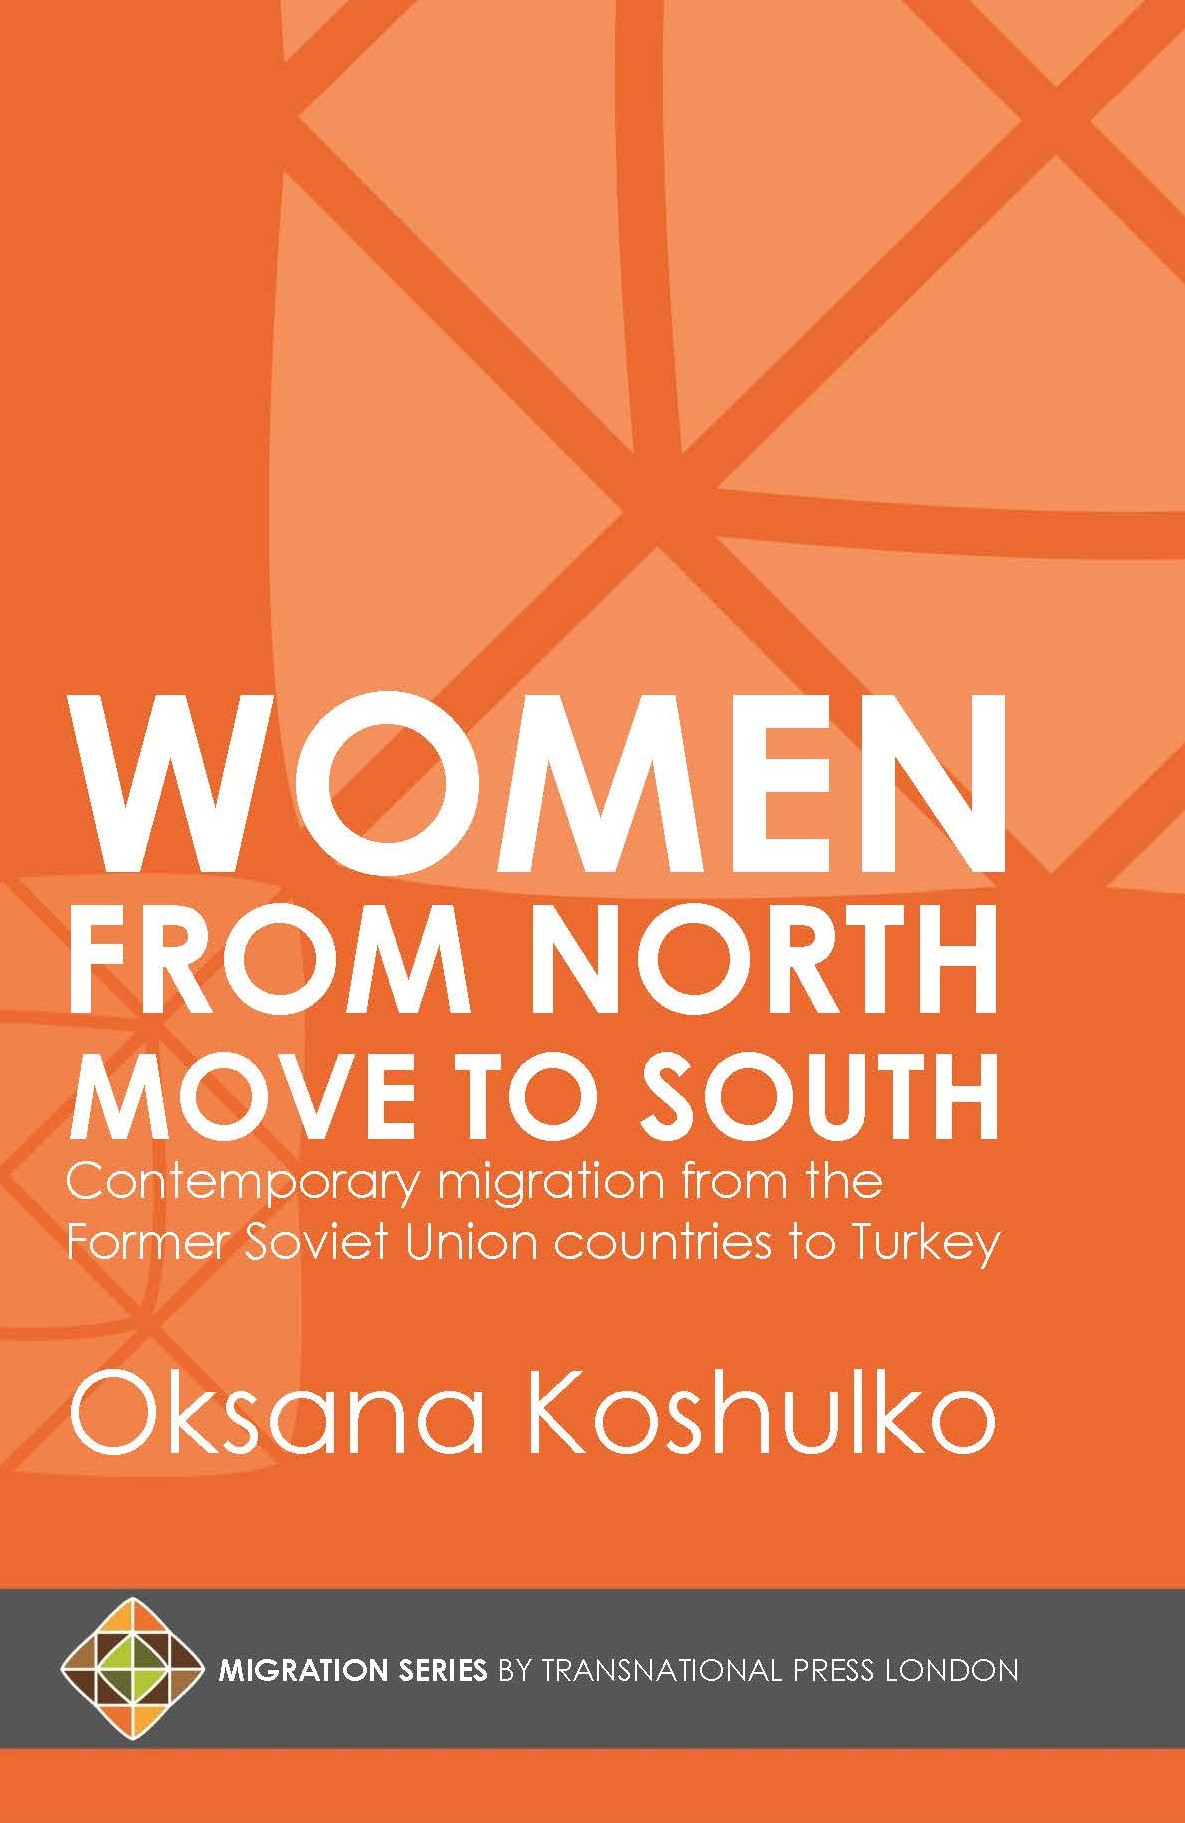 Women from North Move to South: Turkey's Female Movers from the Former Soviet Union Countries